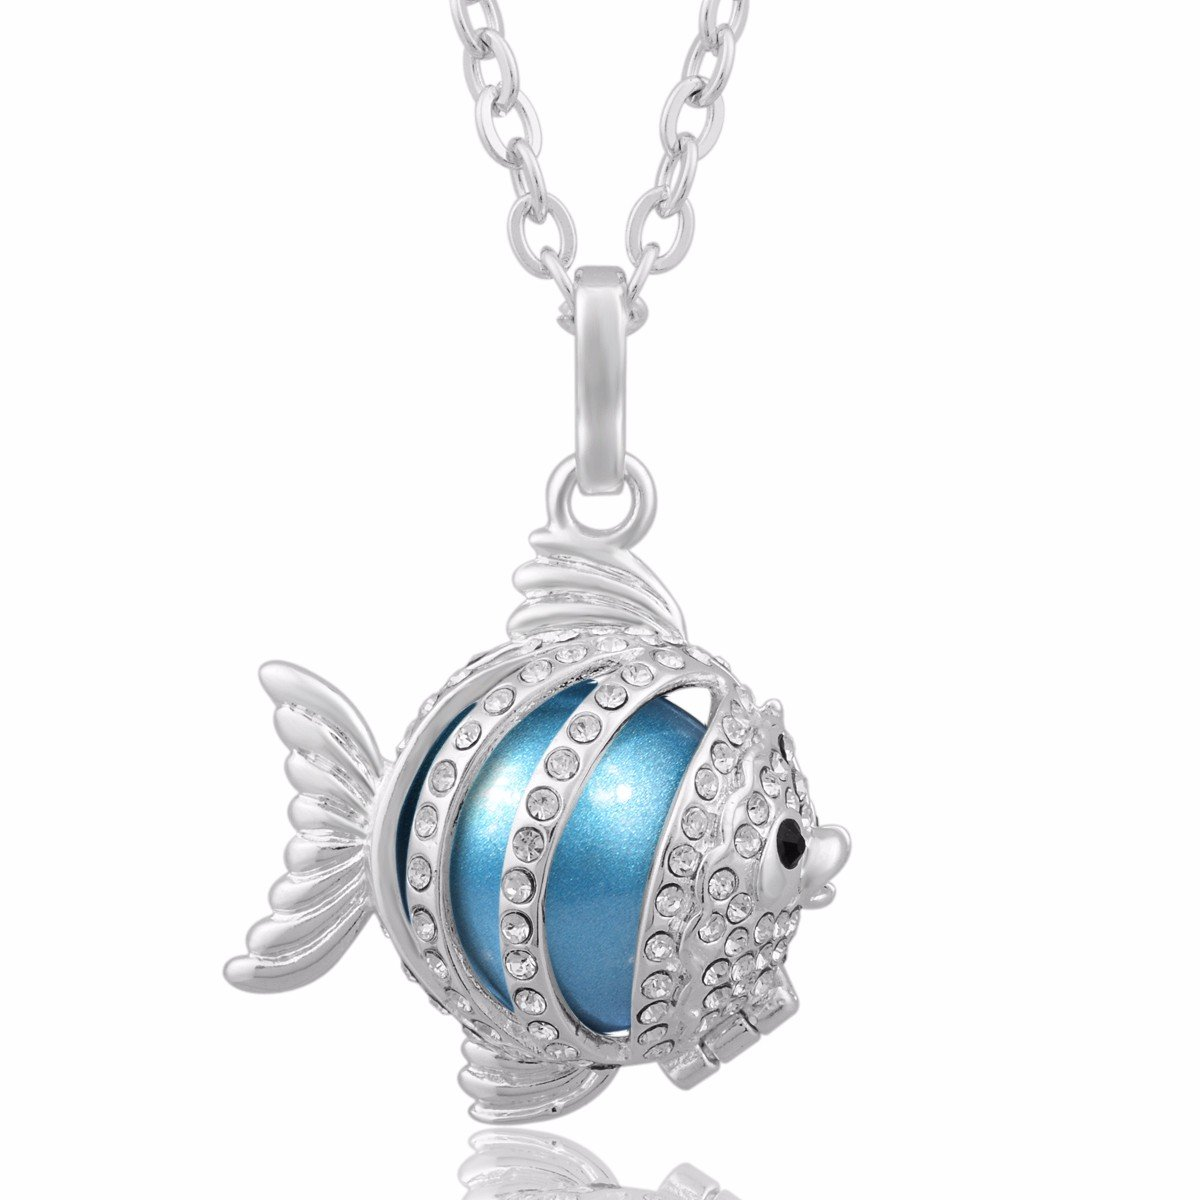 Eudora Harmony Bola Lucky Fish Pendant 20mm Angel Chime Caller Chime Mom to Be Gift 30 Inch Necklace